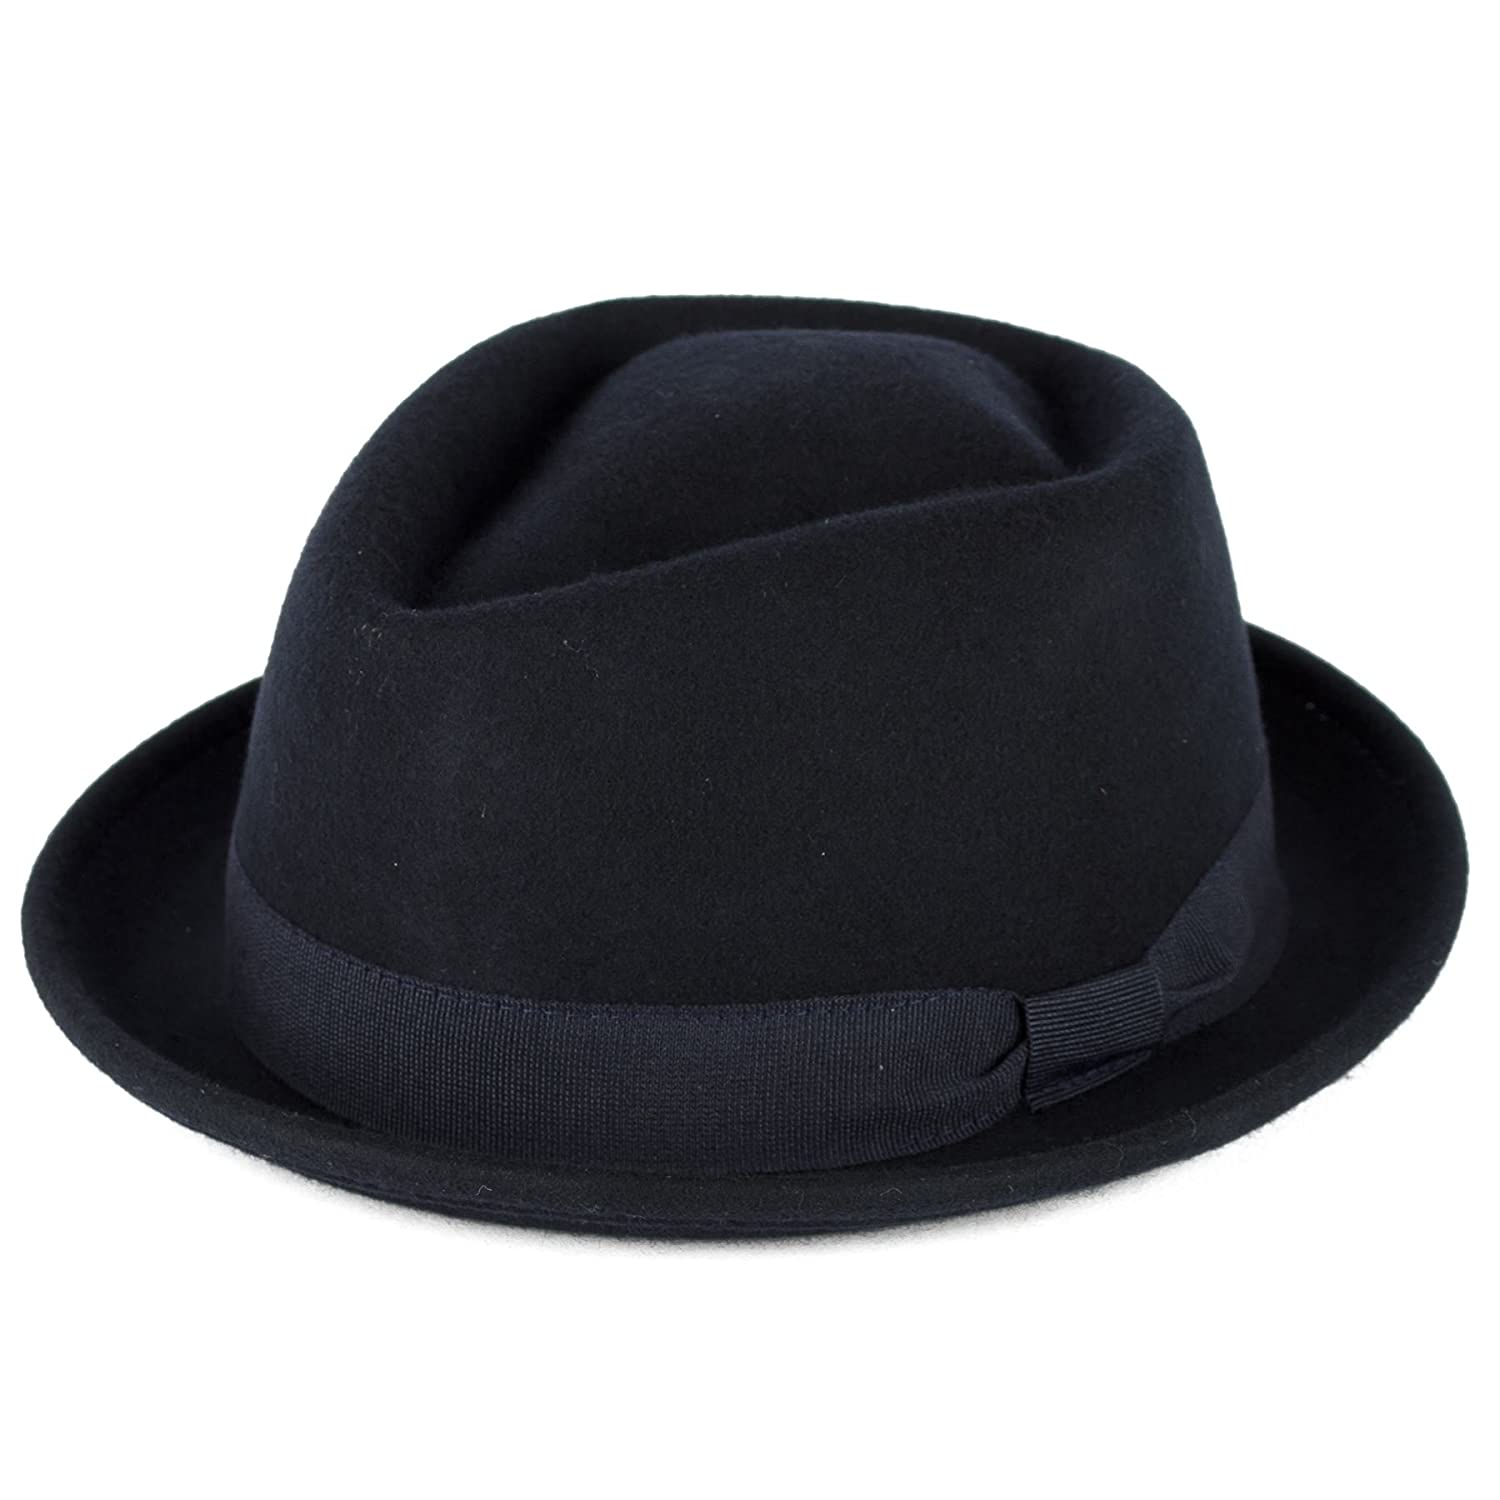 Unisex Made In Italy Waterproof Crushable Trilby Hat With Grosgrain Bow Style Band - Chocolate Brown (61/XL) d2d Hats 7709